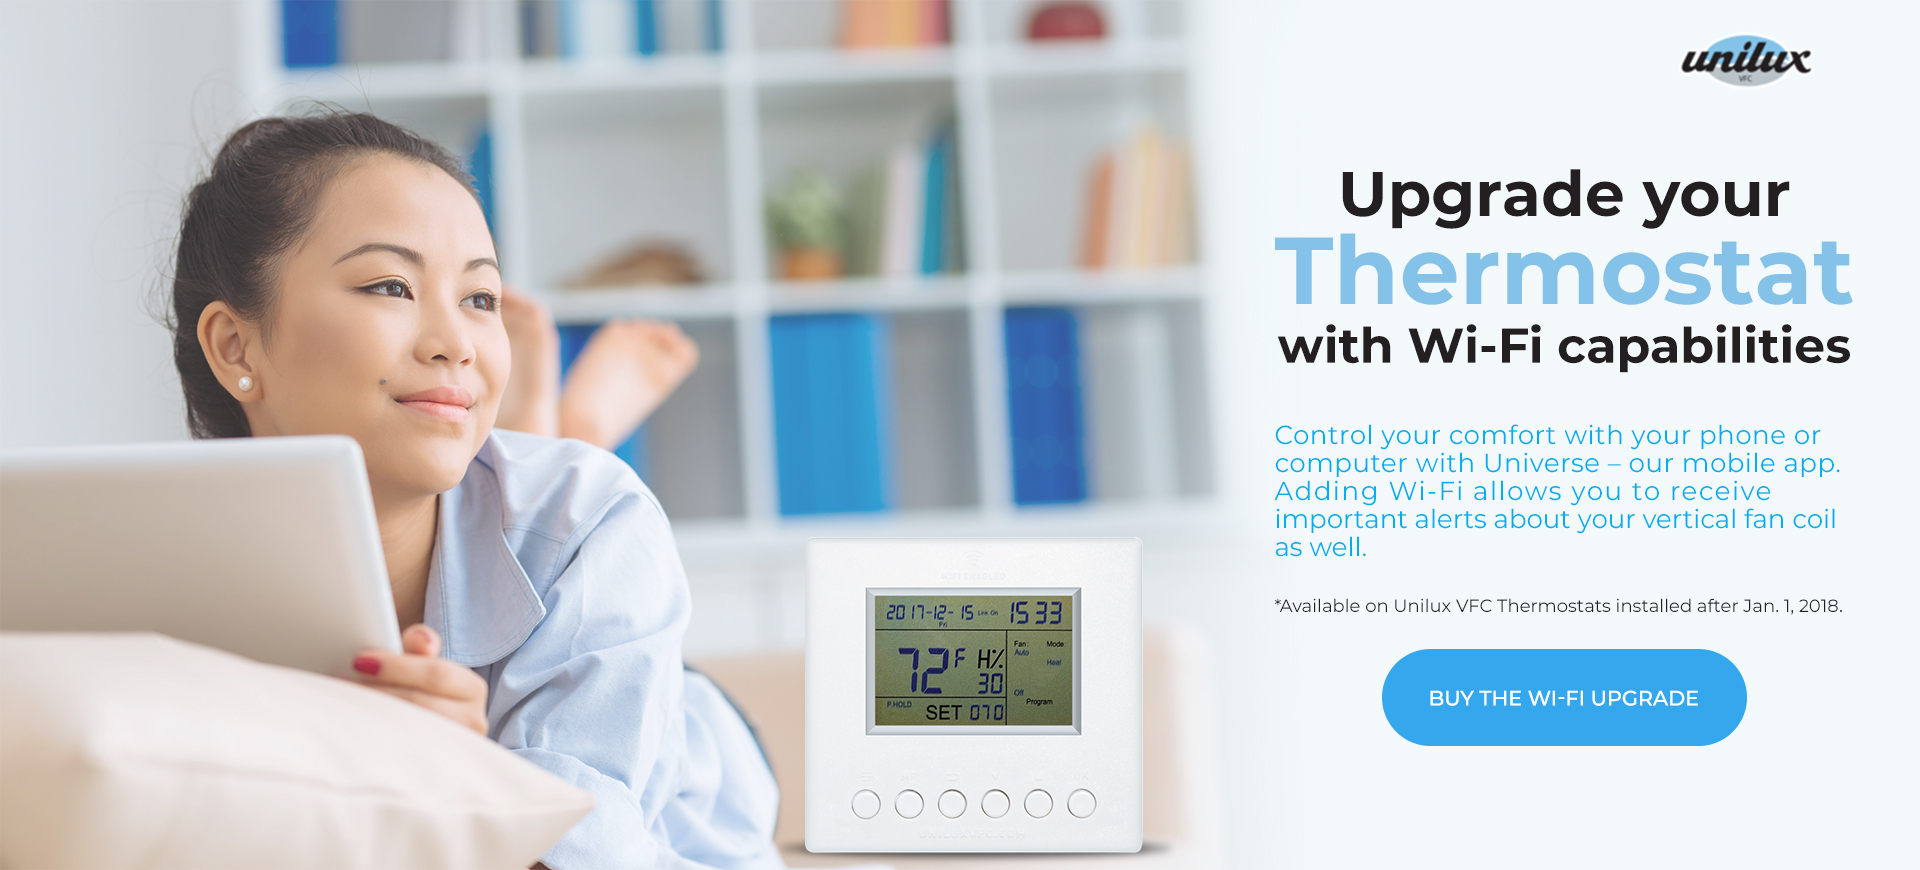 Upgrade Your Thermostat with Wifi Capabilities